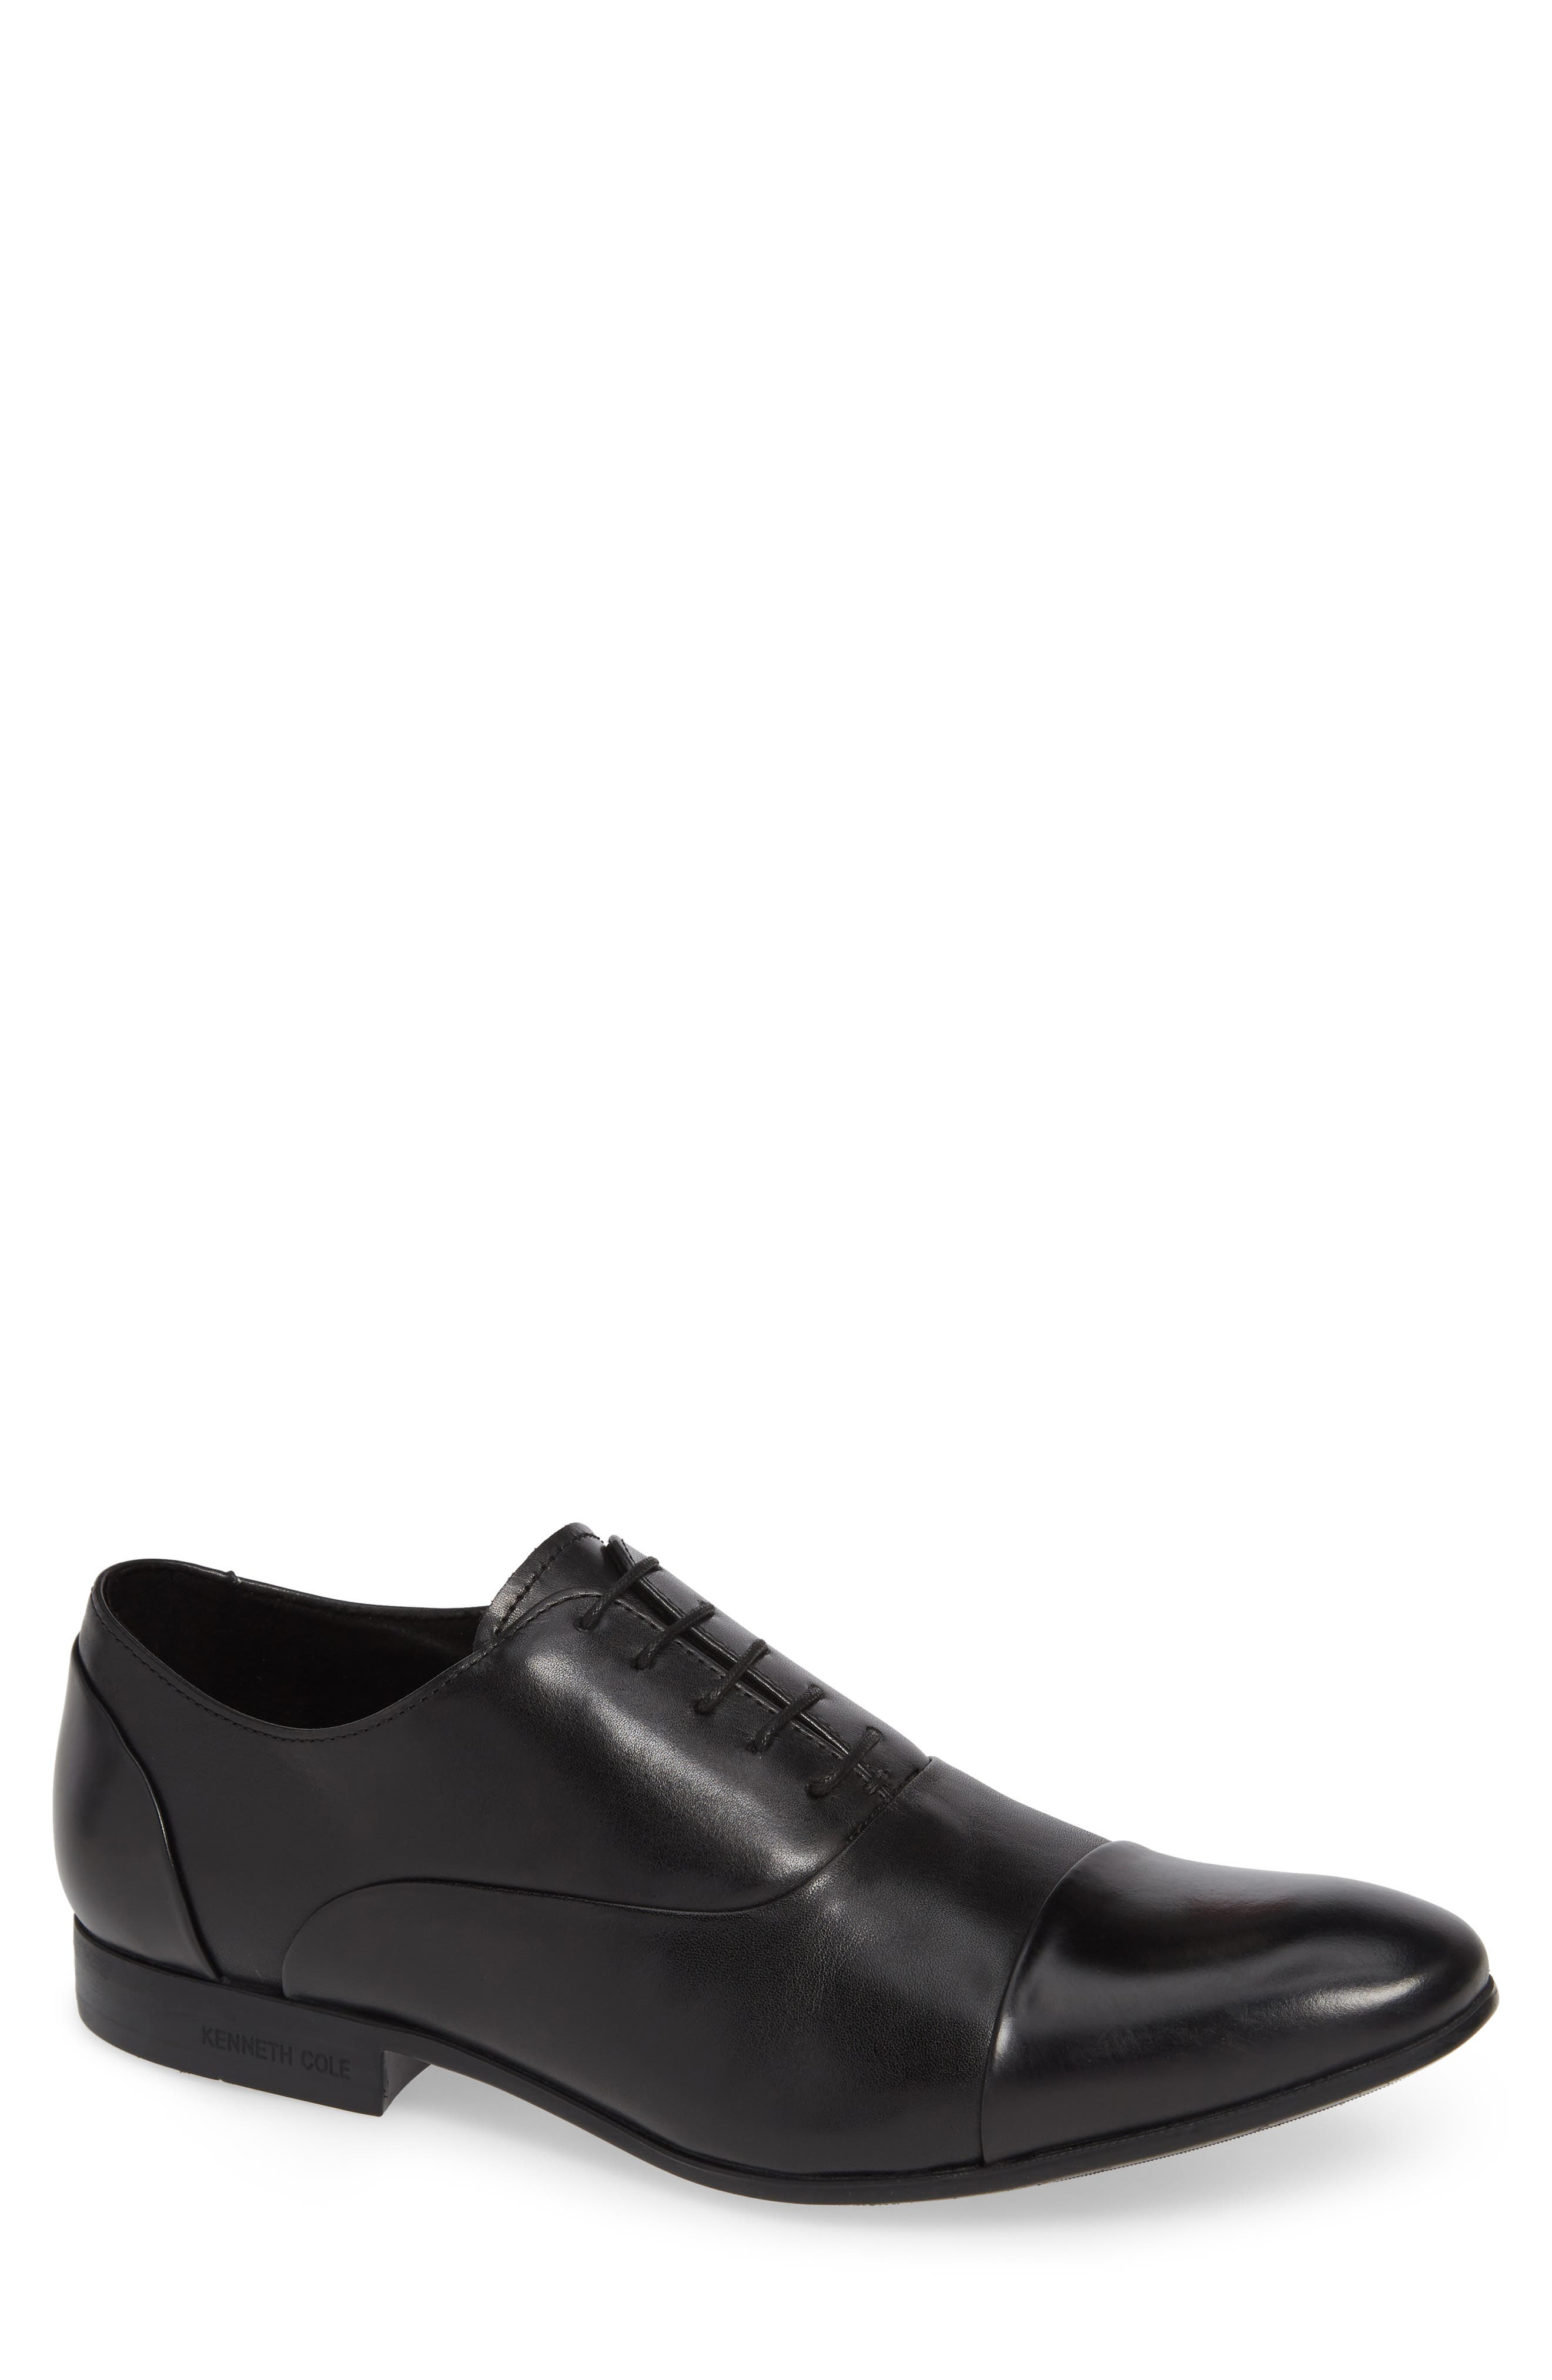 KENNETH COLE NEW YORK Mix Cap Toe Oxford, Main, color, 008